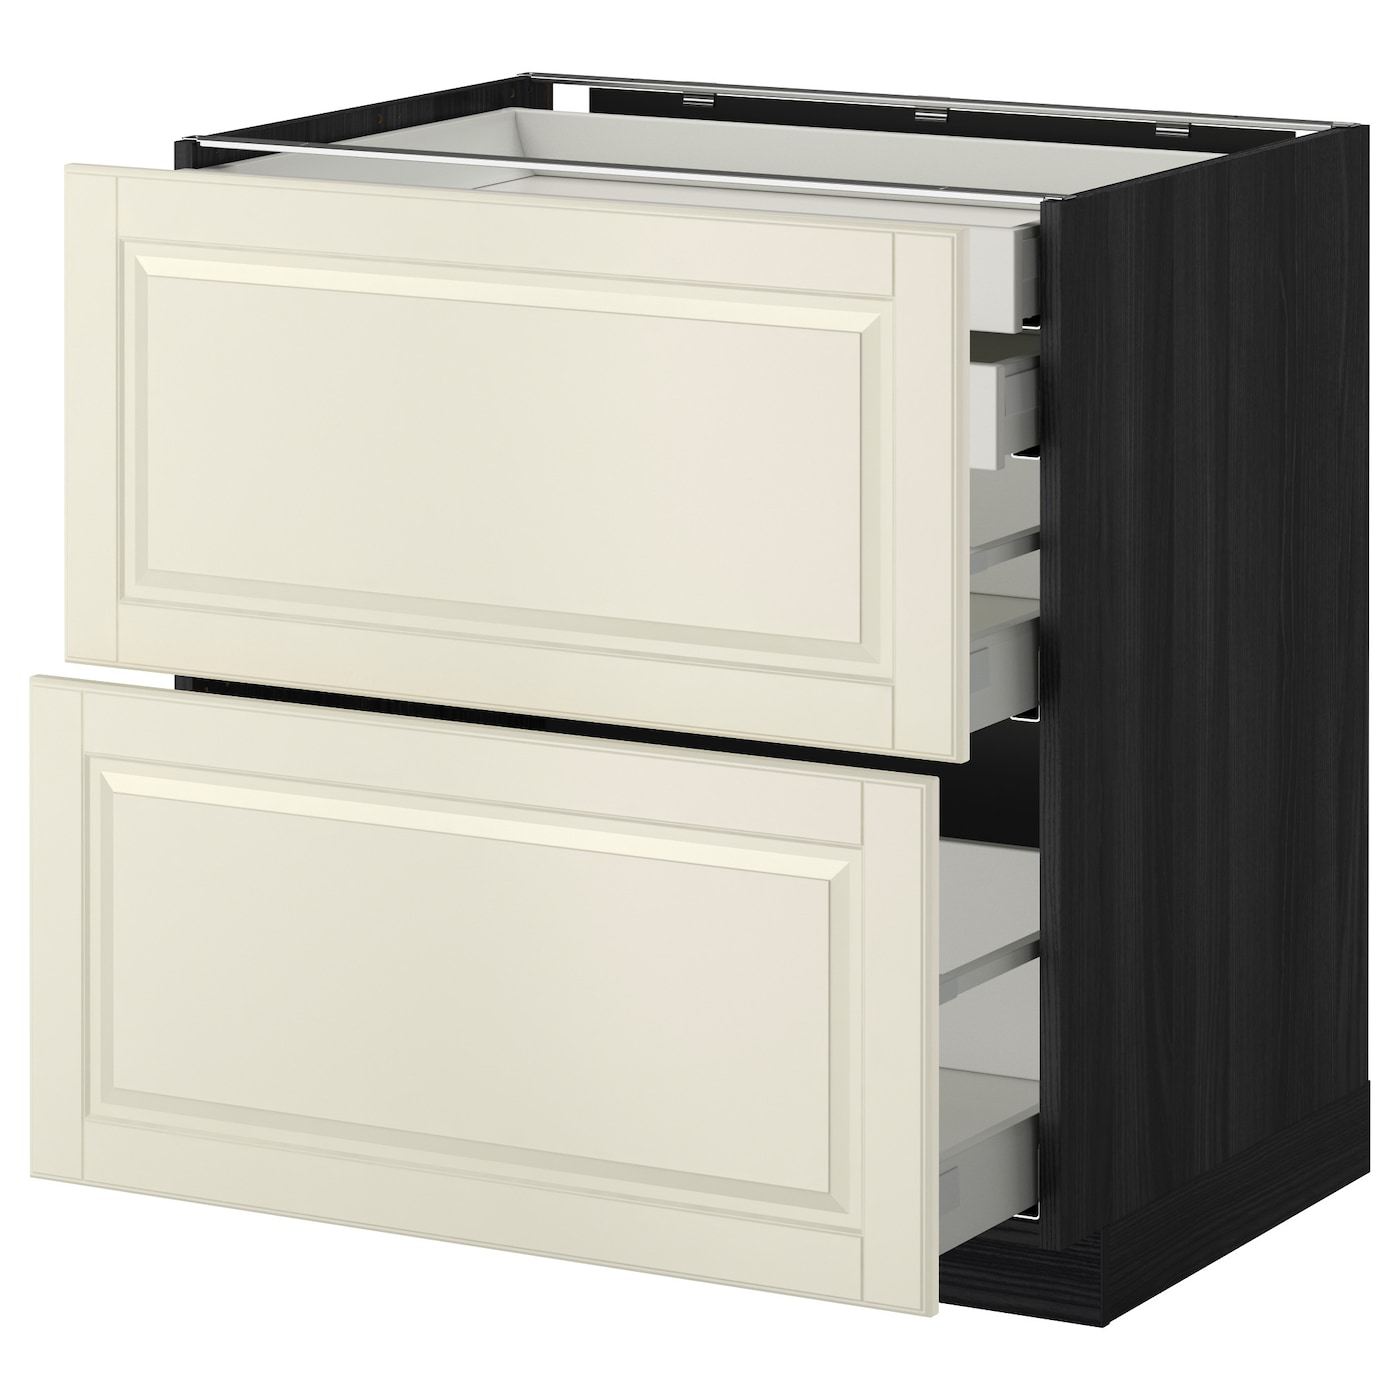 IKEA METOD/MAXIMERA base cb 2 frnts/2 low/1 md/1 hi drw Smooth-running drawers with stop.